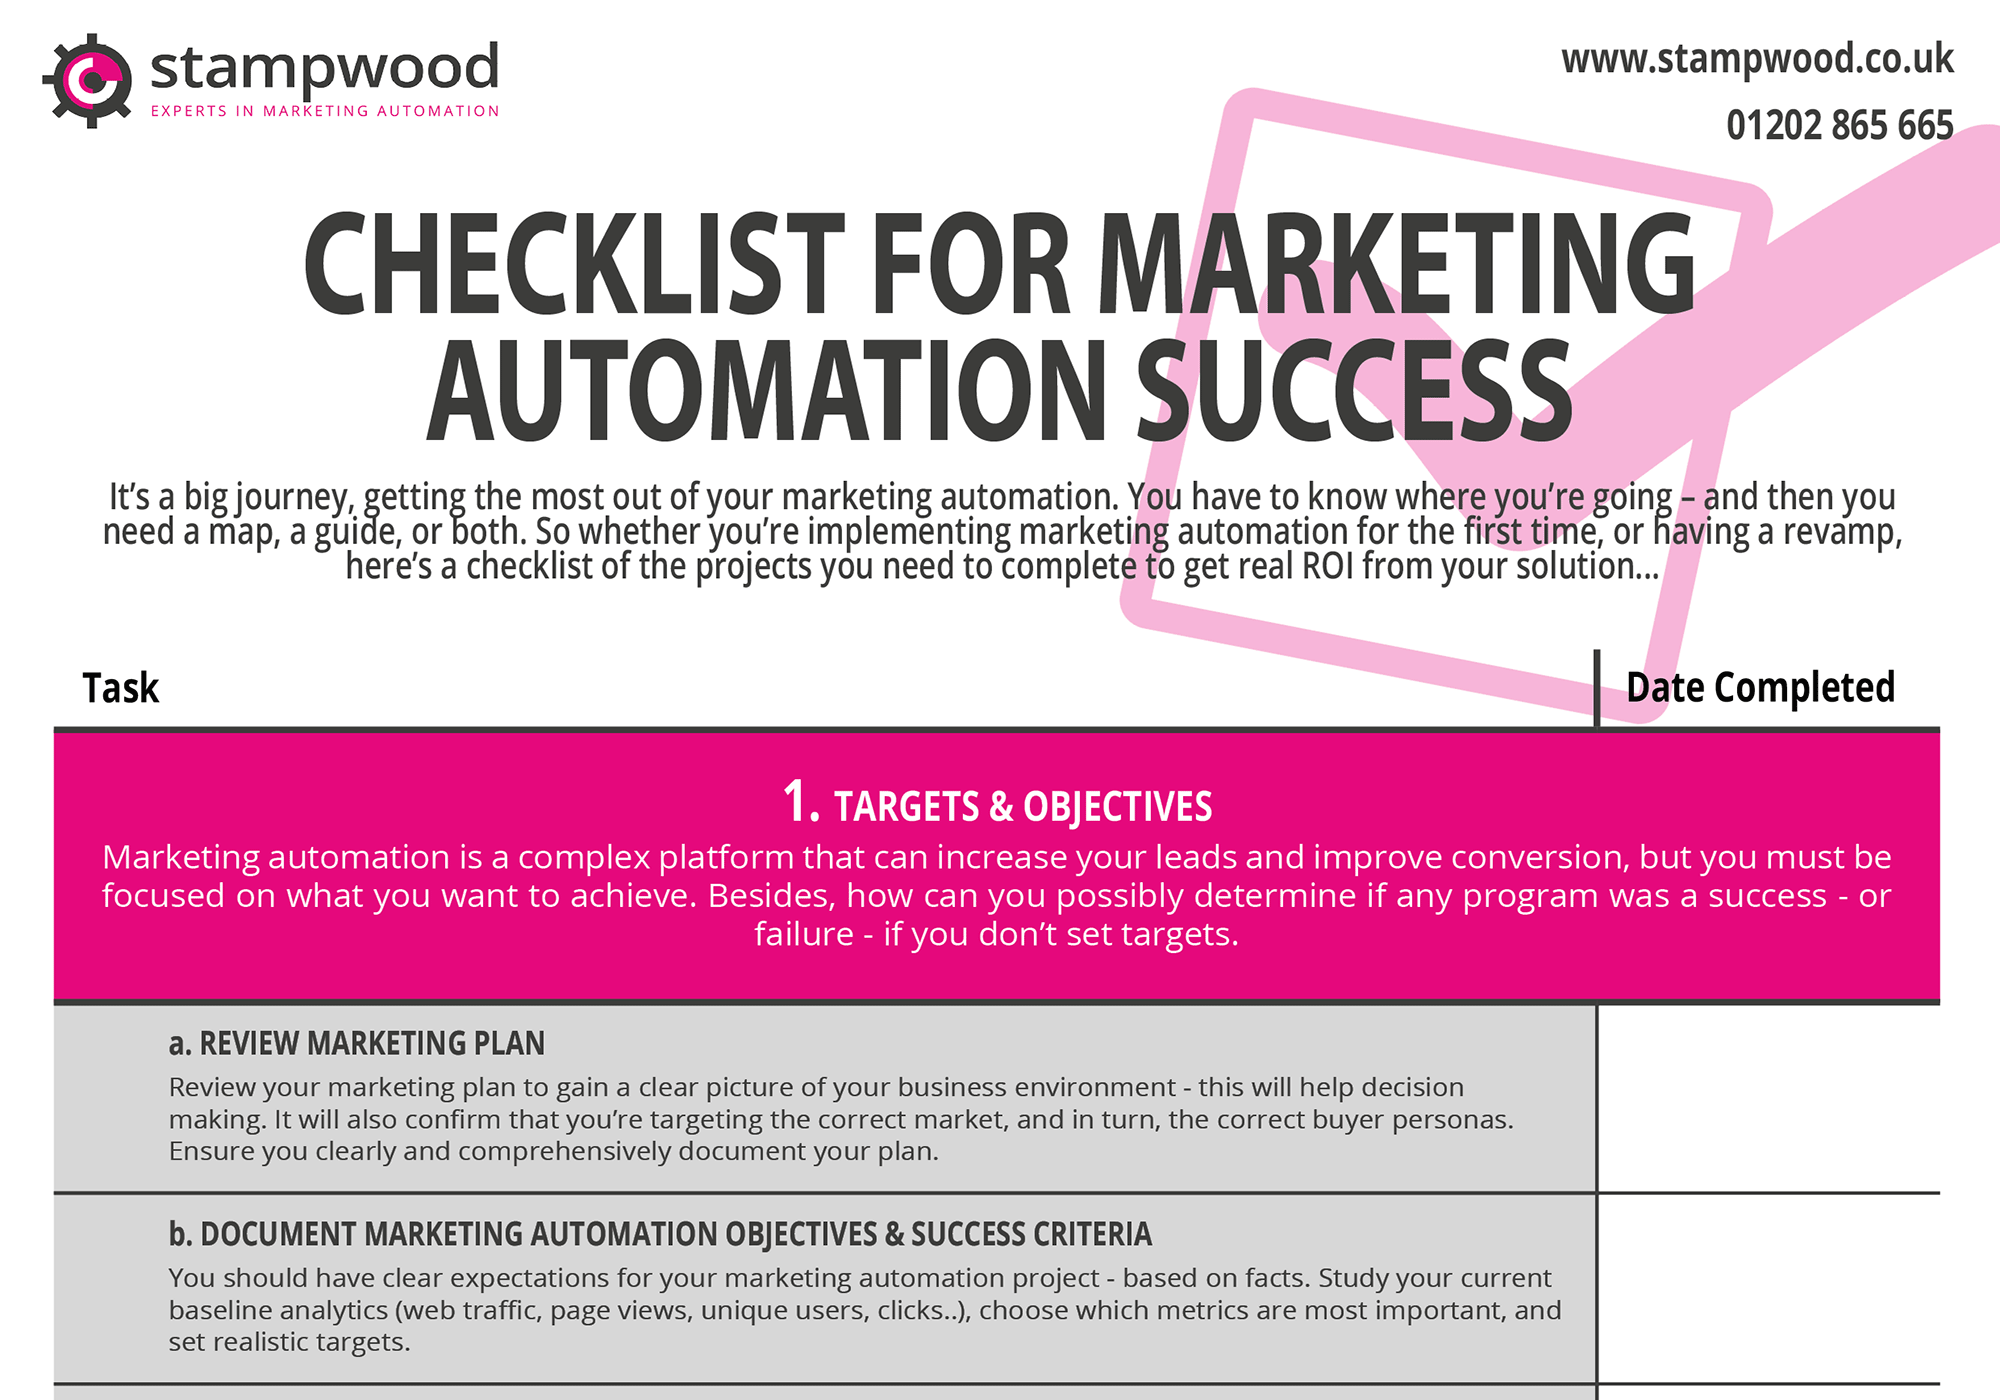 checklist-for-marketing-automation-success-front-page